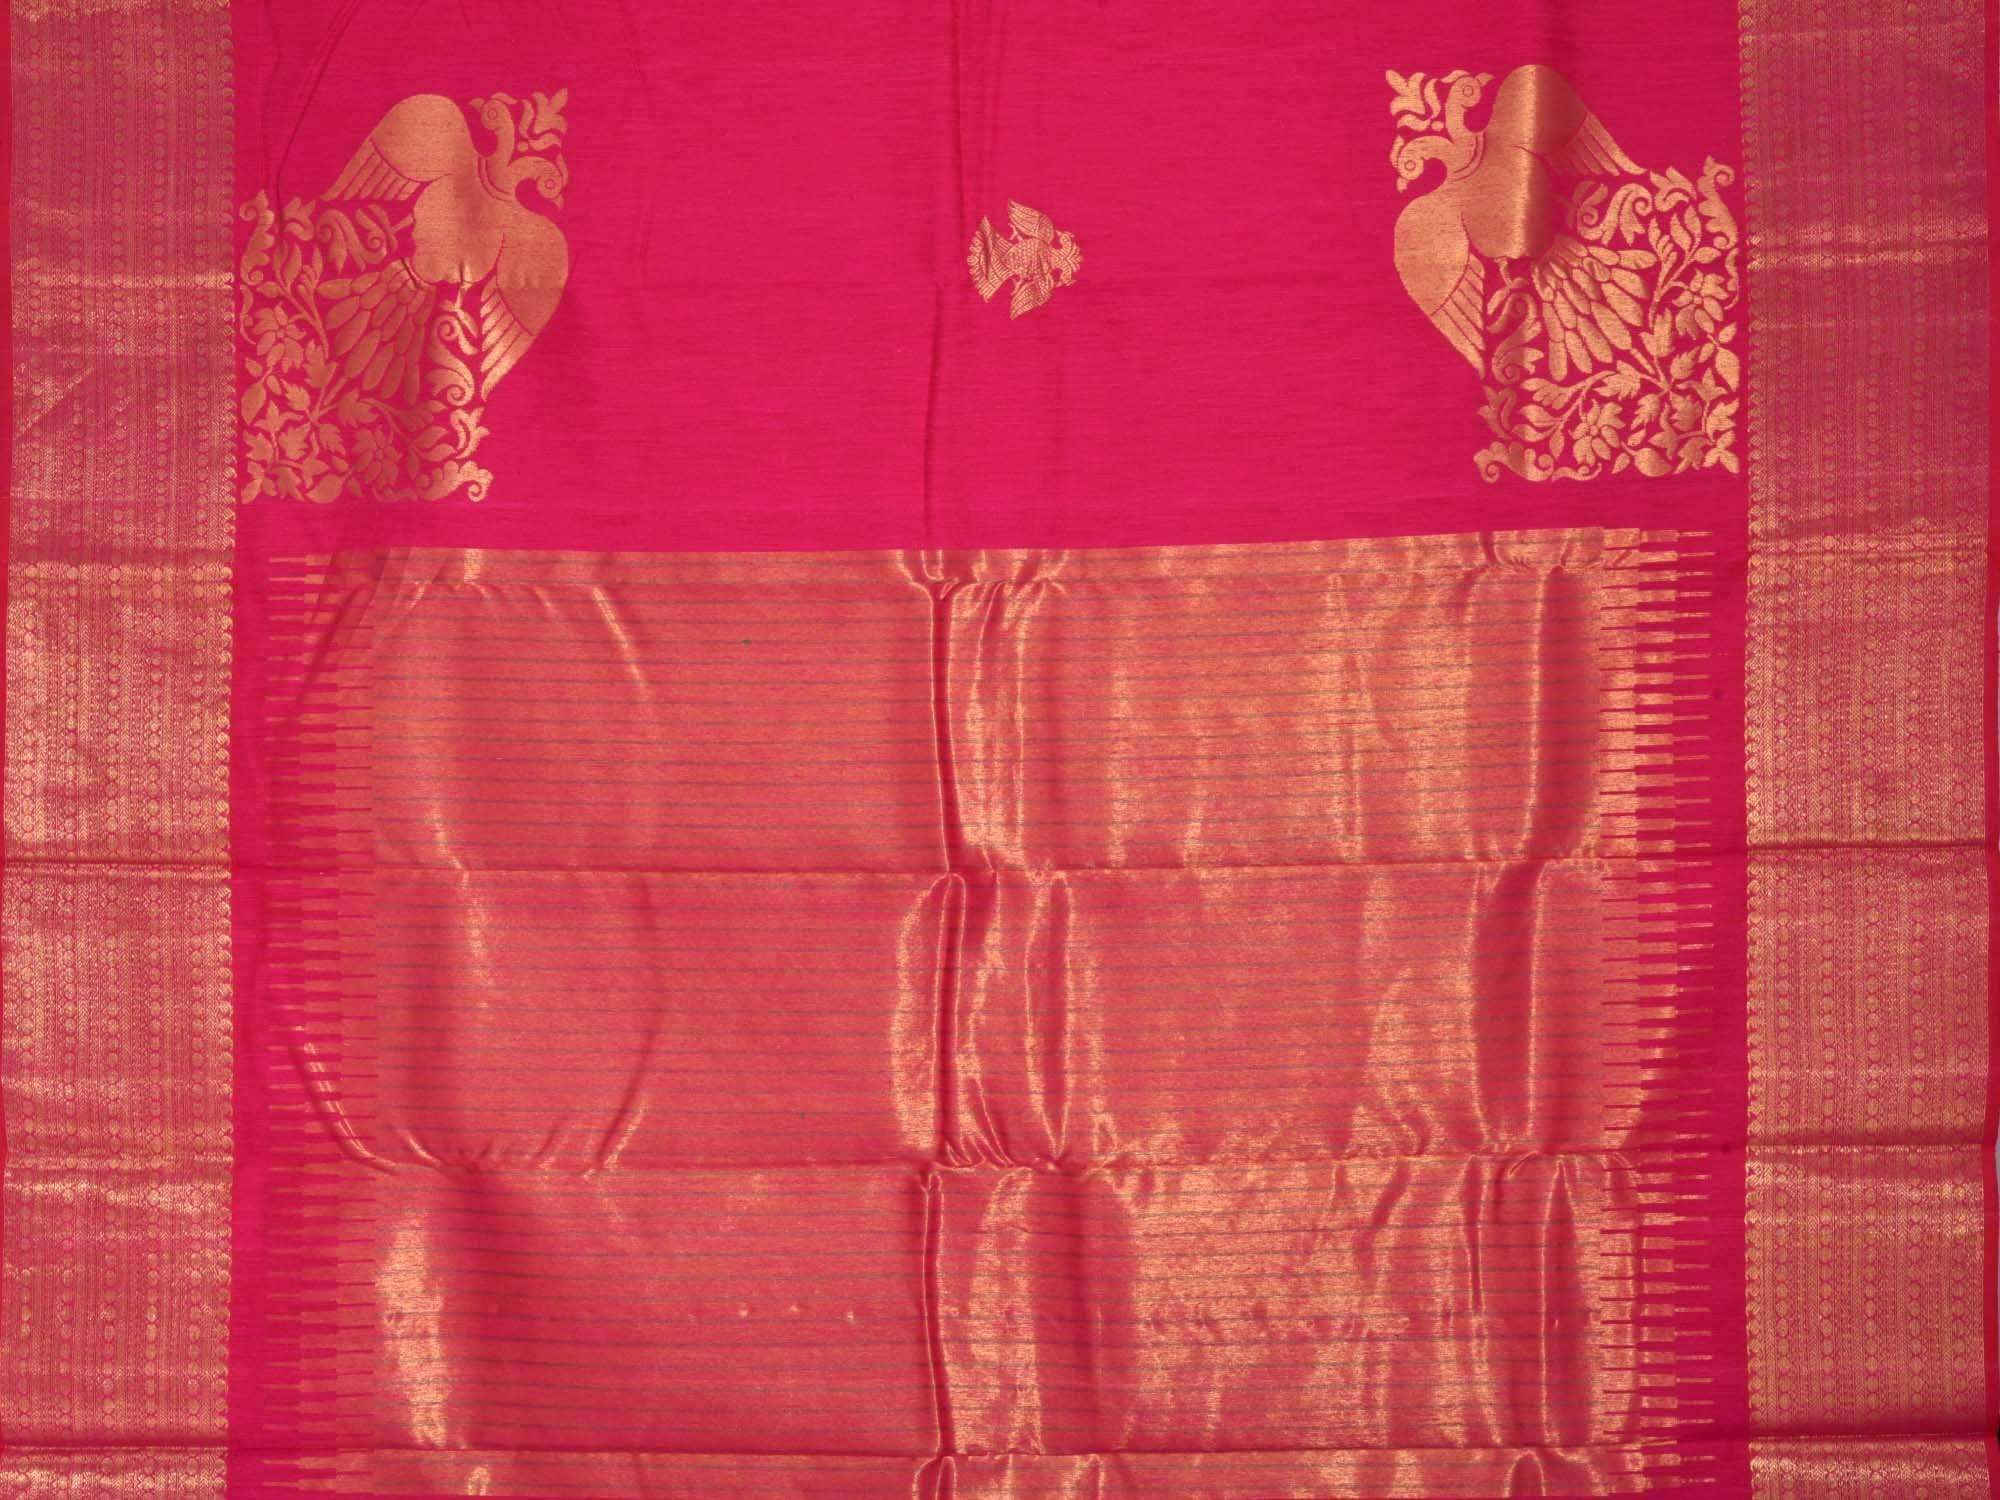 Pink Kanchipuram Linen Handloom Saree with Corner Gandaberunda Design K0247